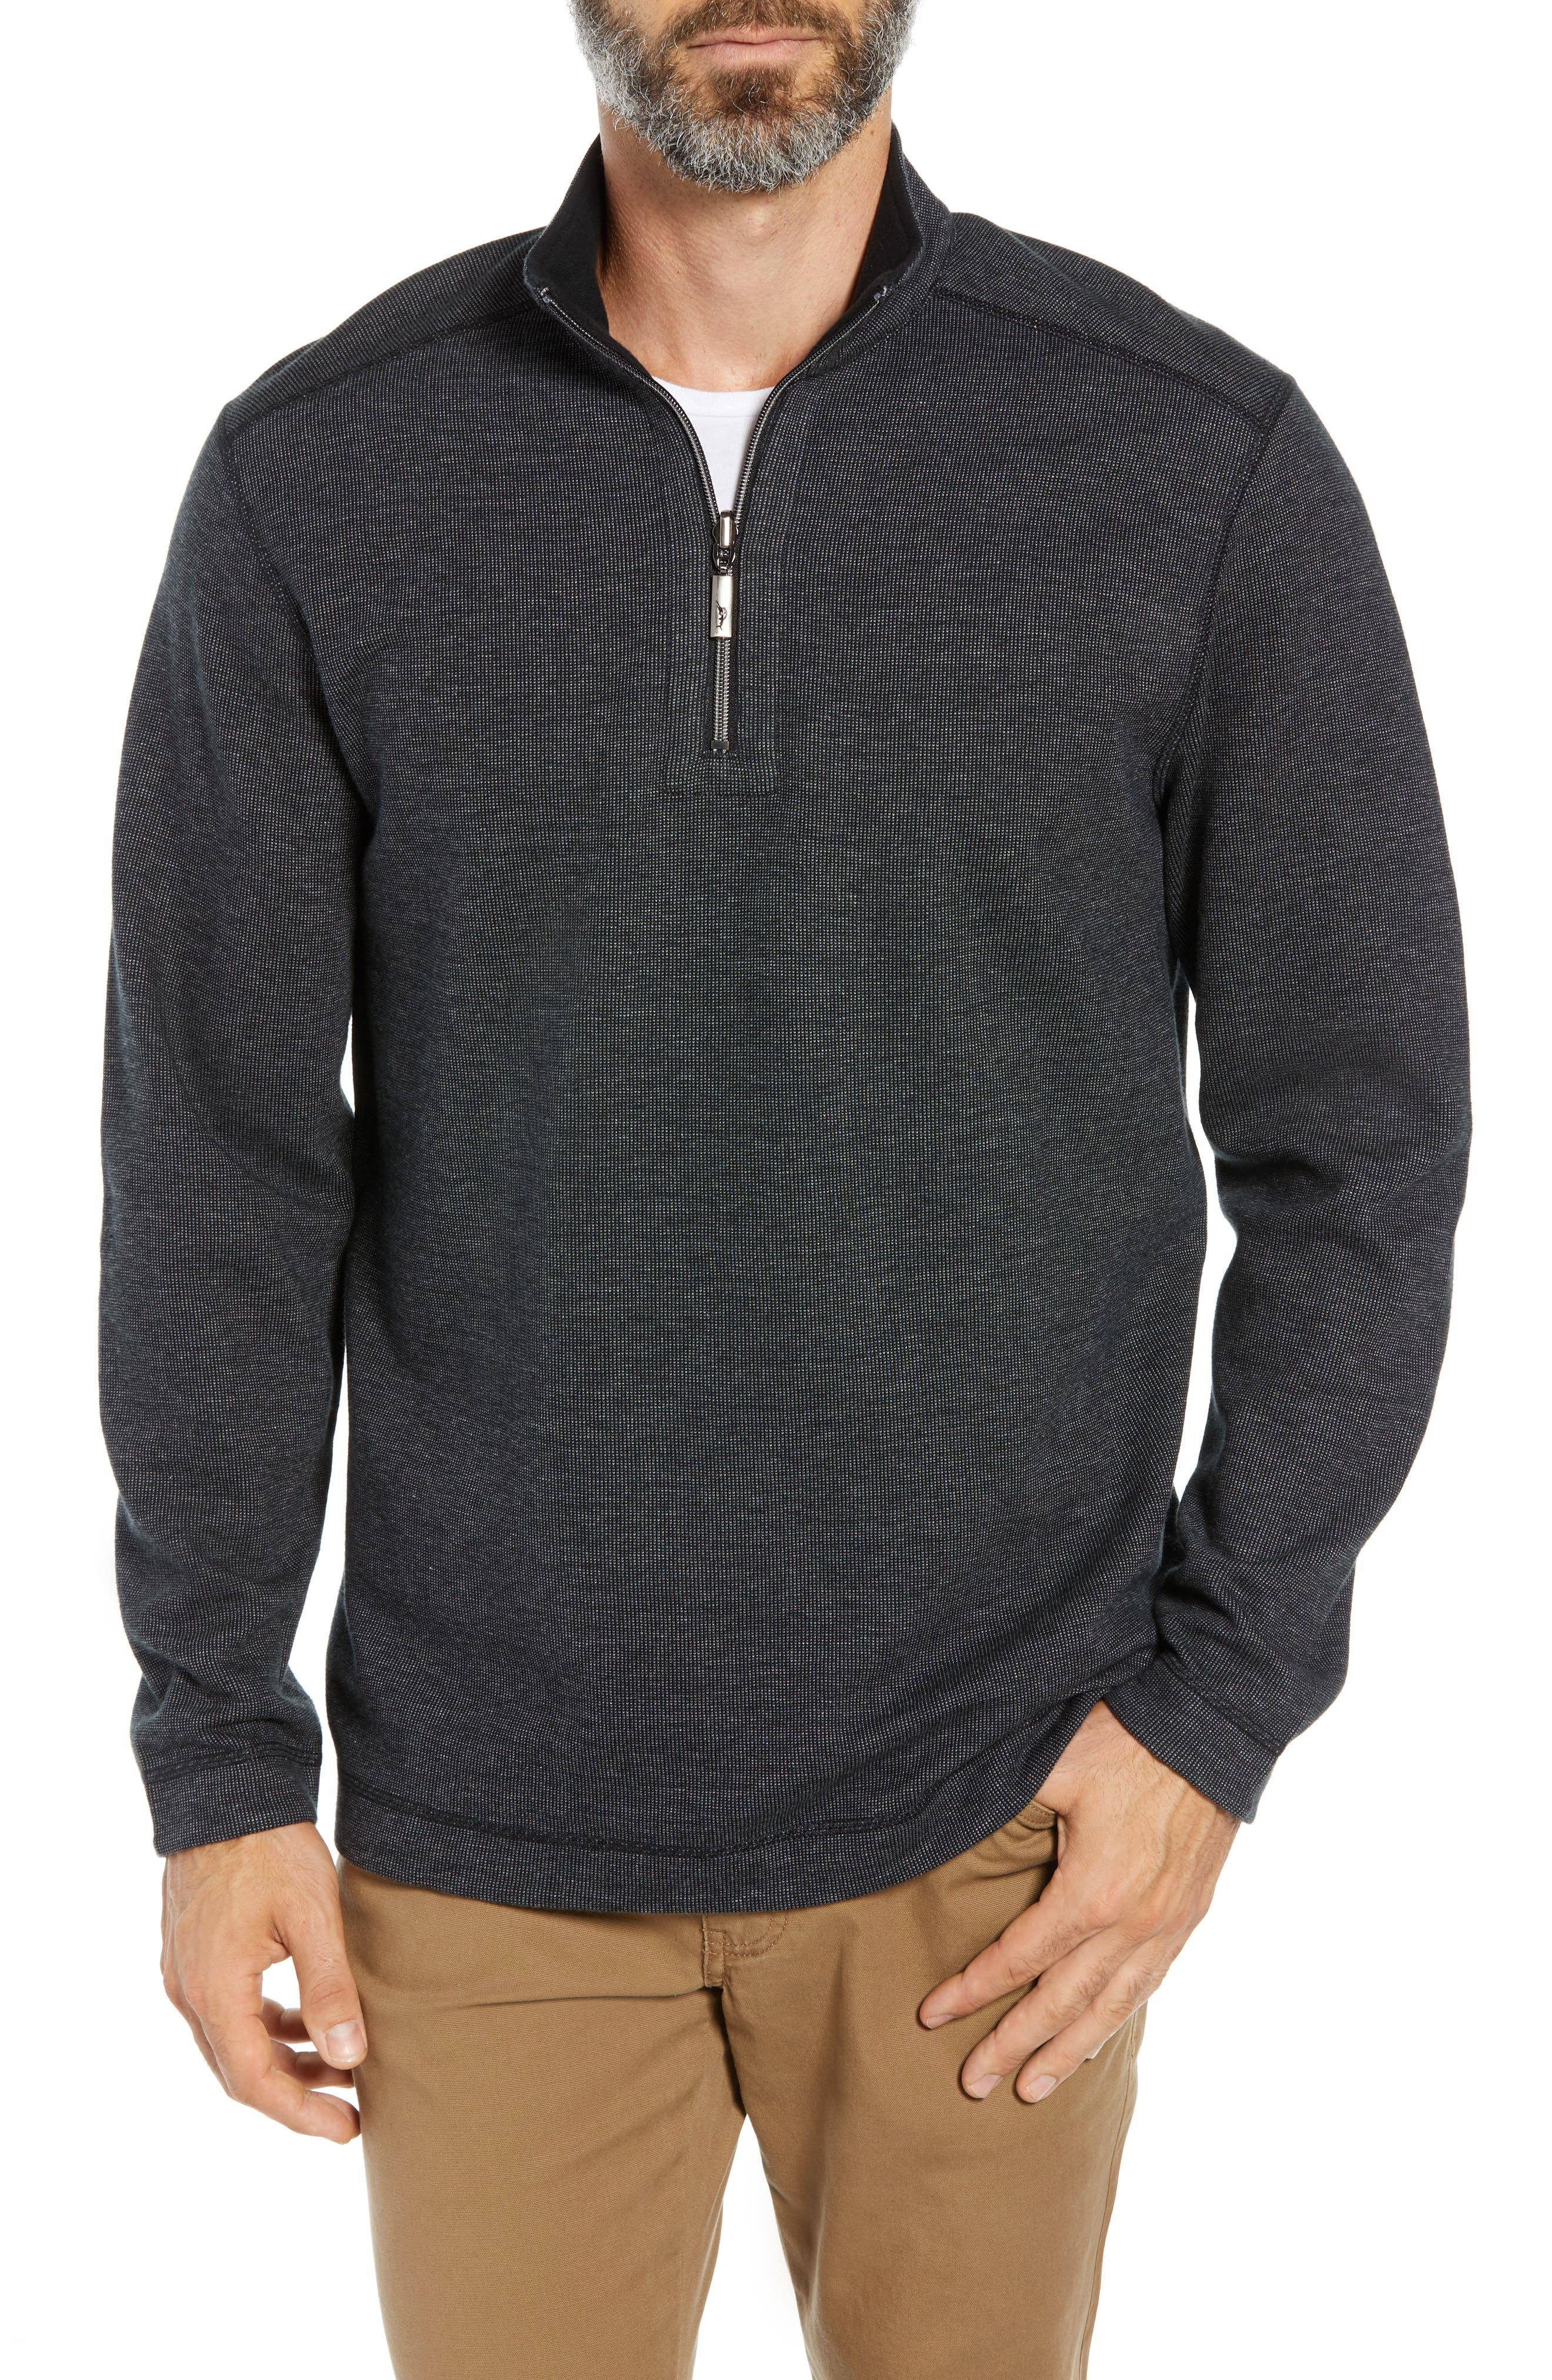 Playa Port Flip Quarter Zip Pullover,                             Main thumbnail 1, color,                             001